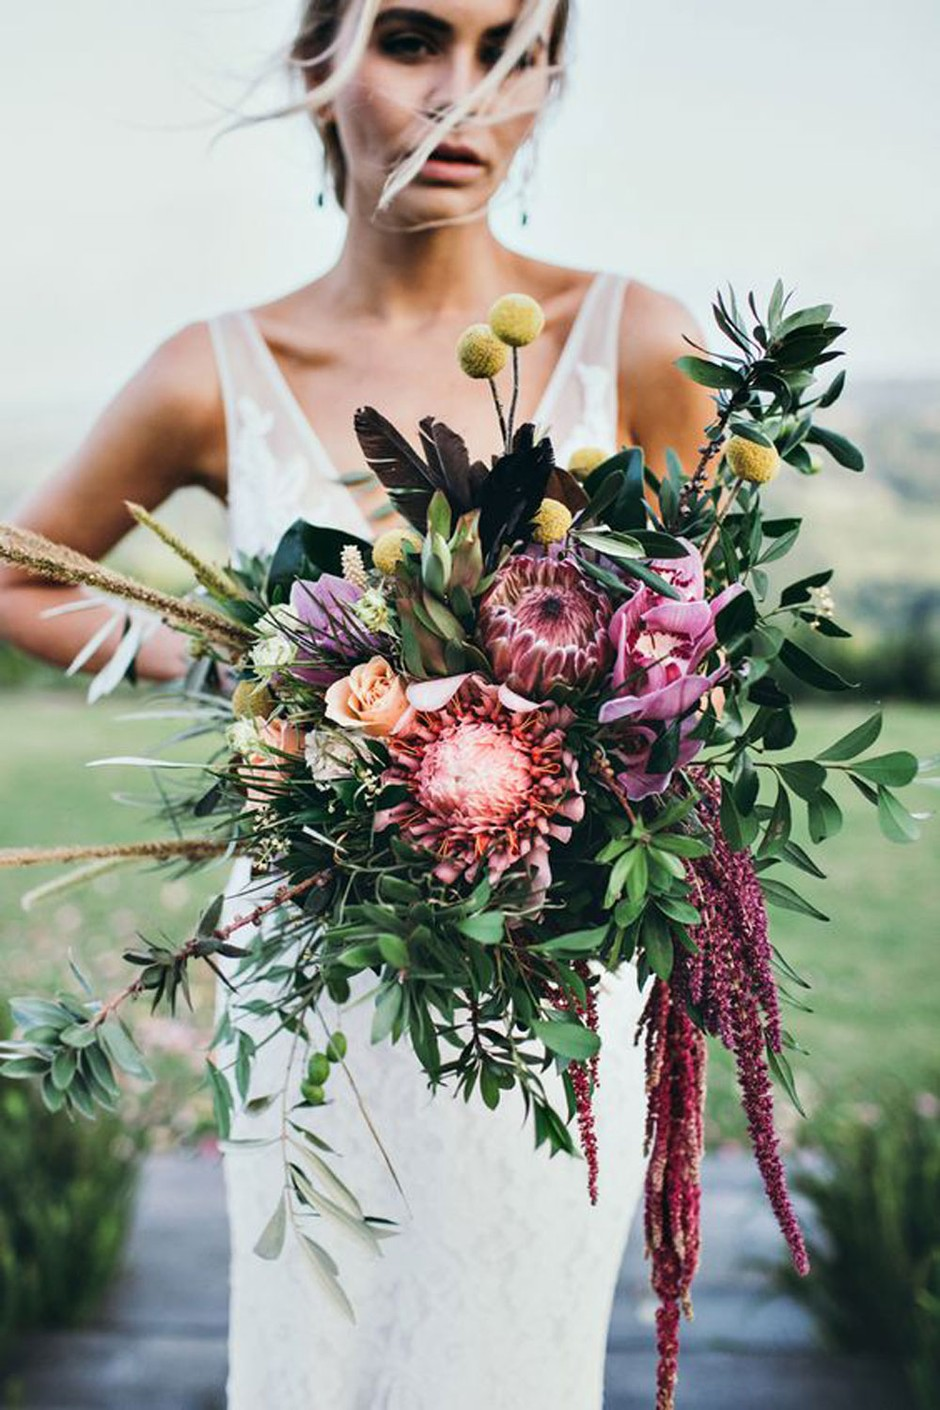 Free Wedding Ideas: 51 Unique Ideas for Your Big Day